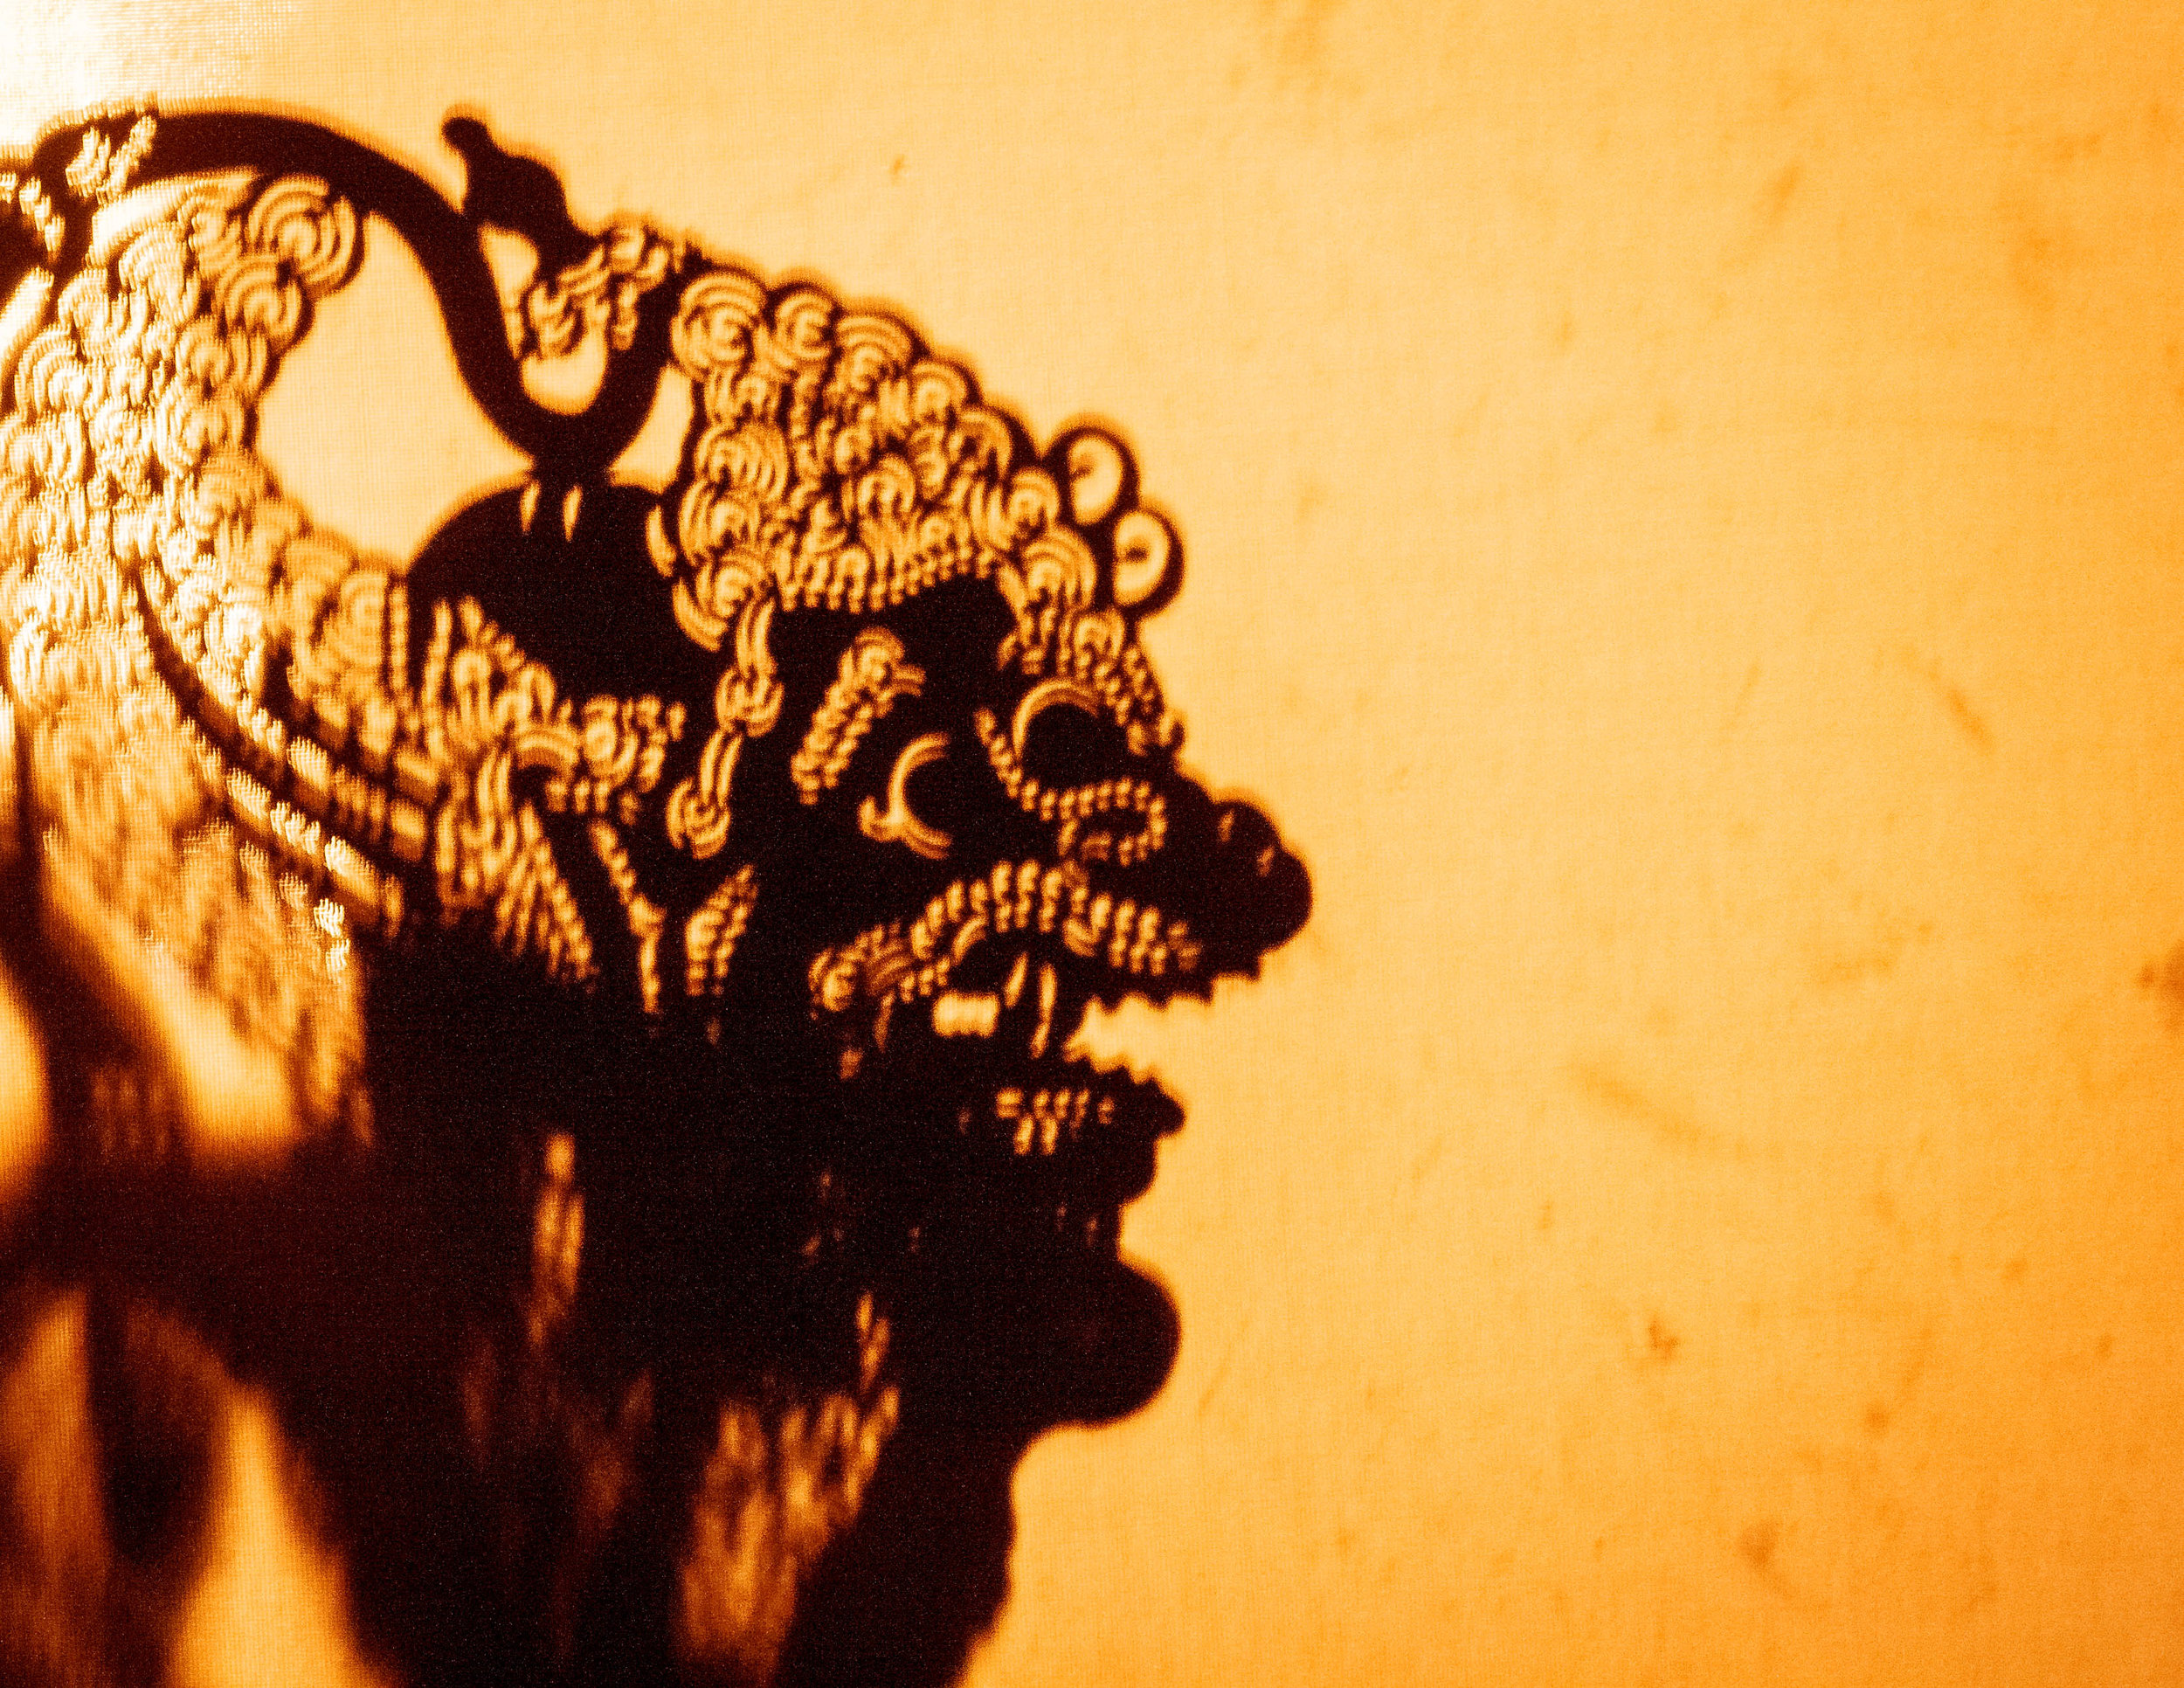 Amazing things to do in Ubud at night: Shadow puppets